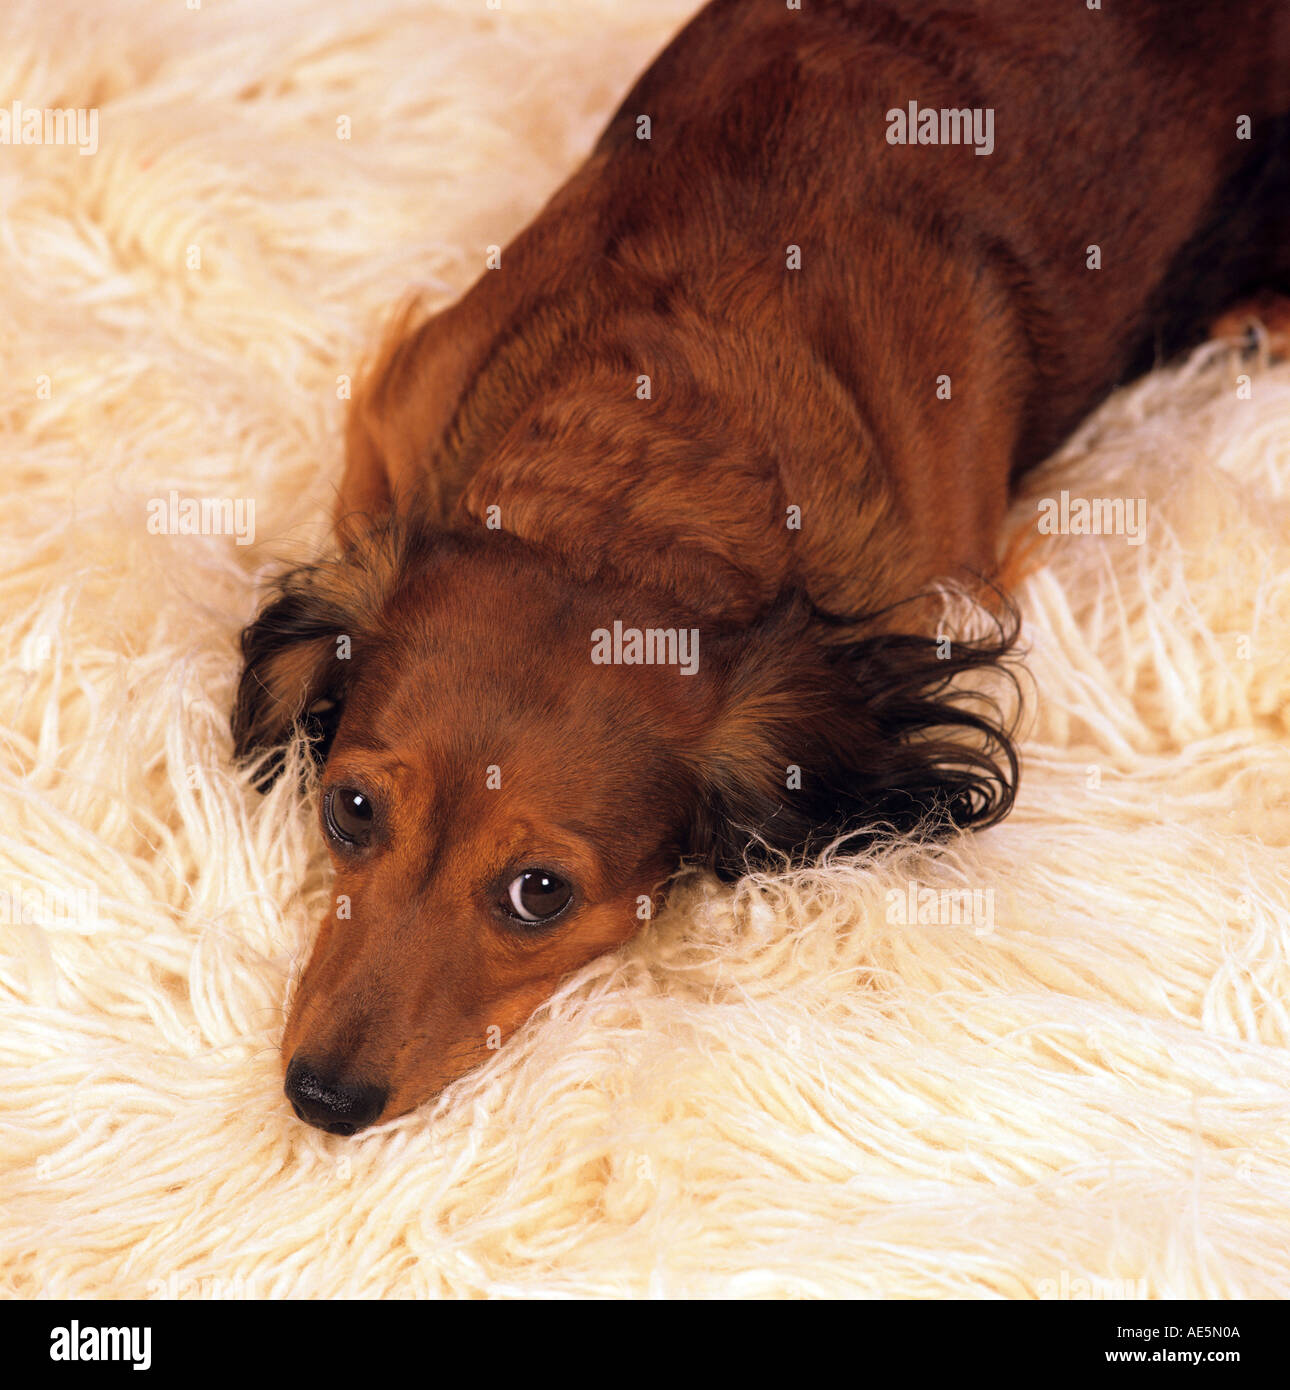 Teppich Wohnzimmer Hund Lying Longhaired Dachshund Stockfotos And Lying Longhaired